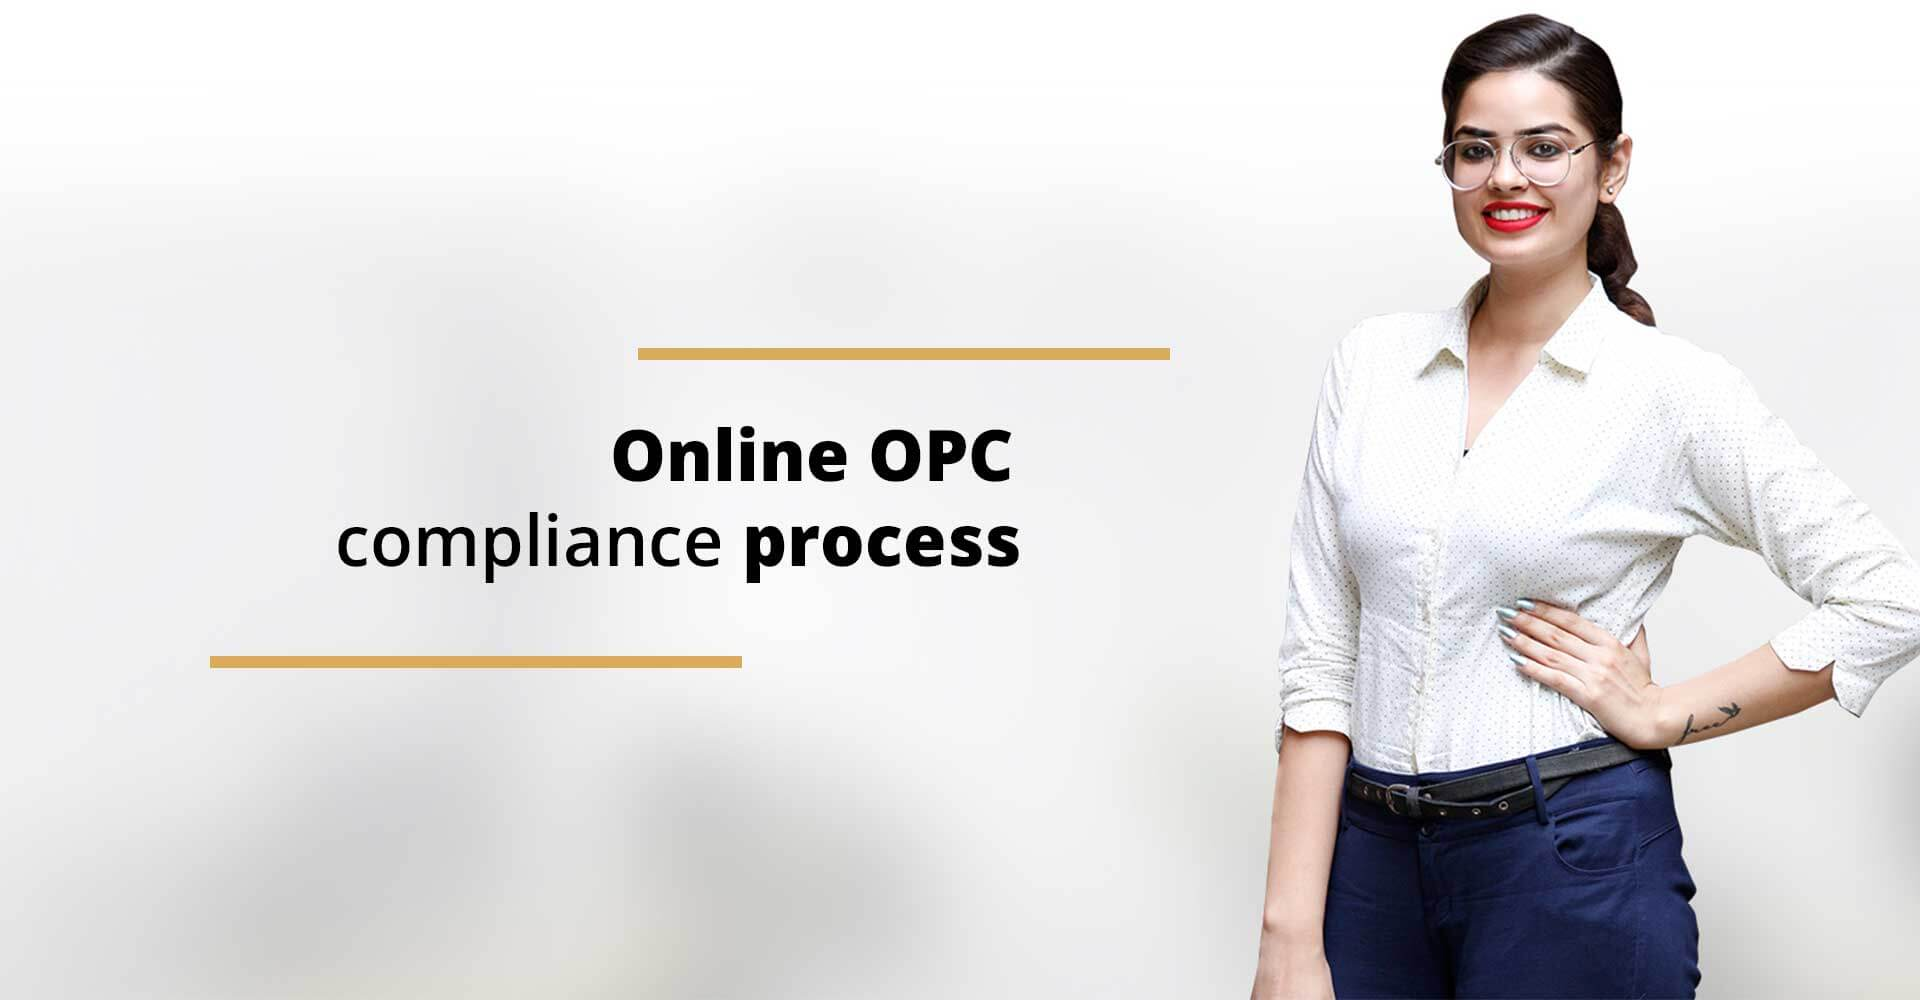 Annual filings for one person company, OPC Annual Filing